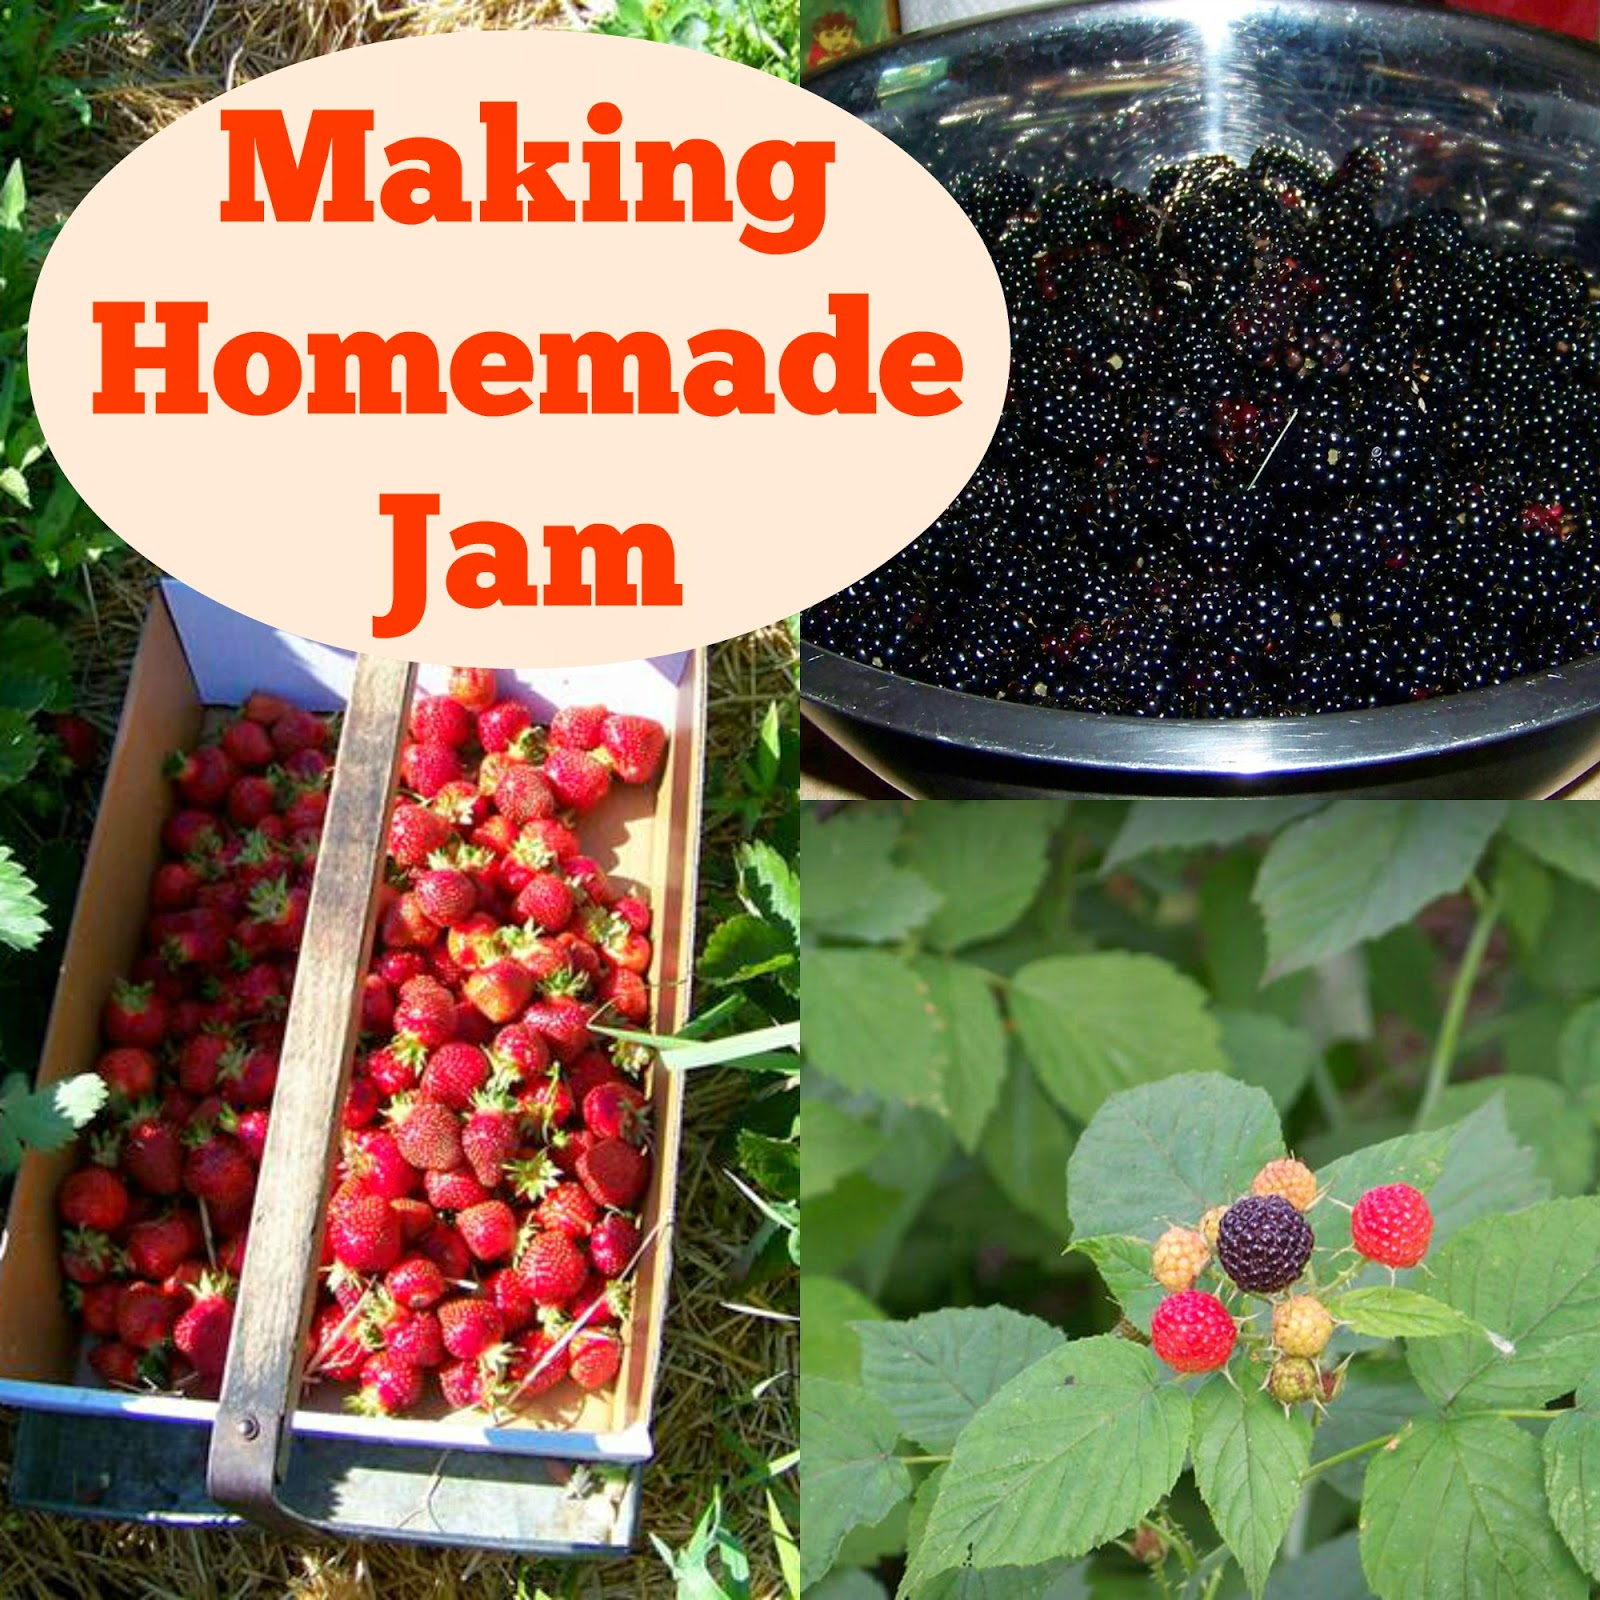 Making Homemade Jam